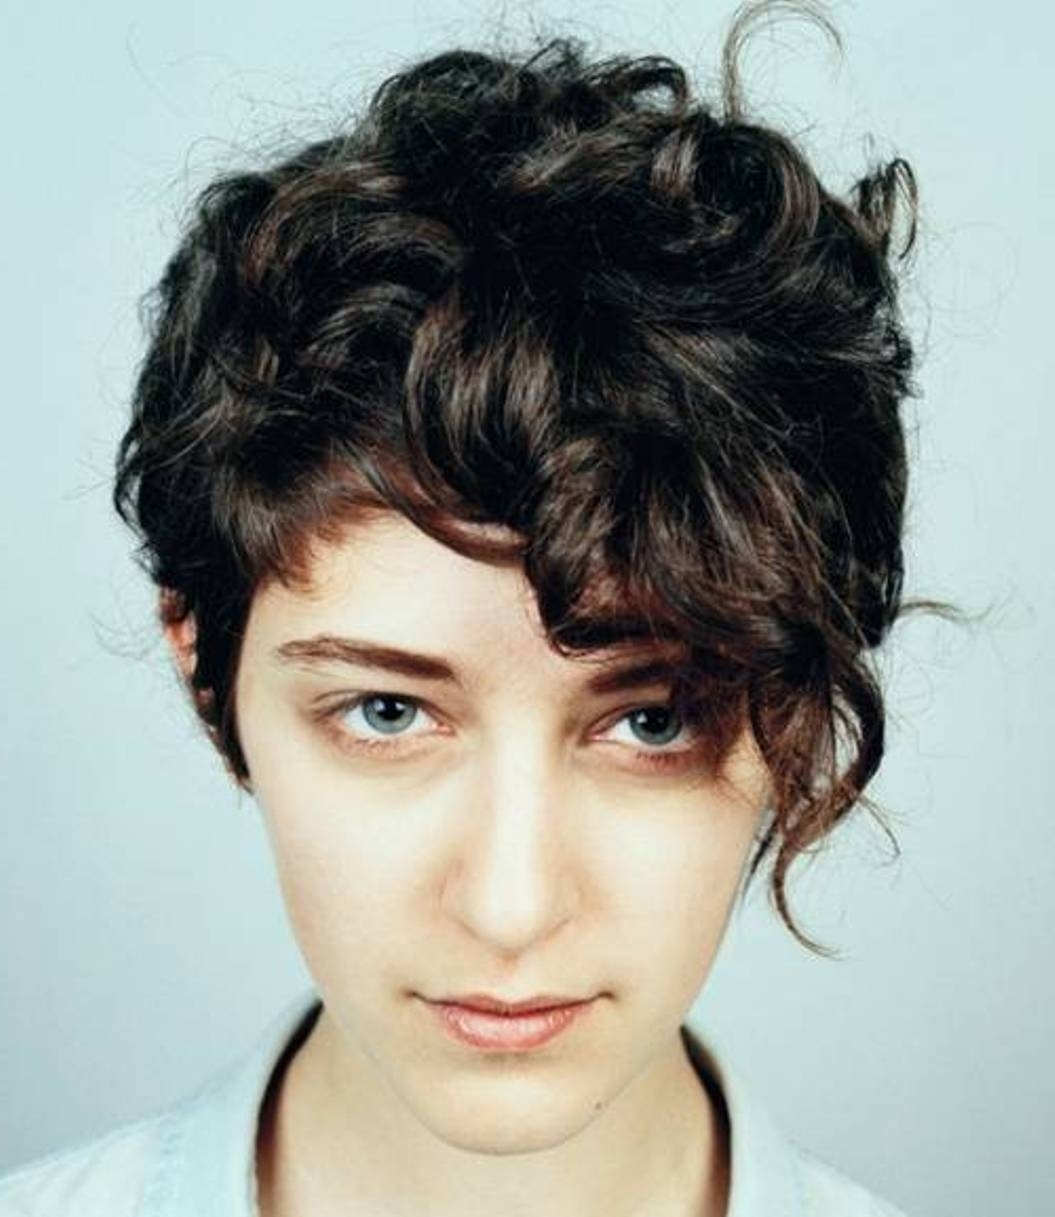 Short Hair Style Girls Curly - Hairstyles Inspiring regarding Short Curly Hairstyle For Girl